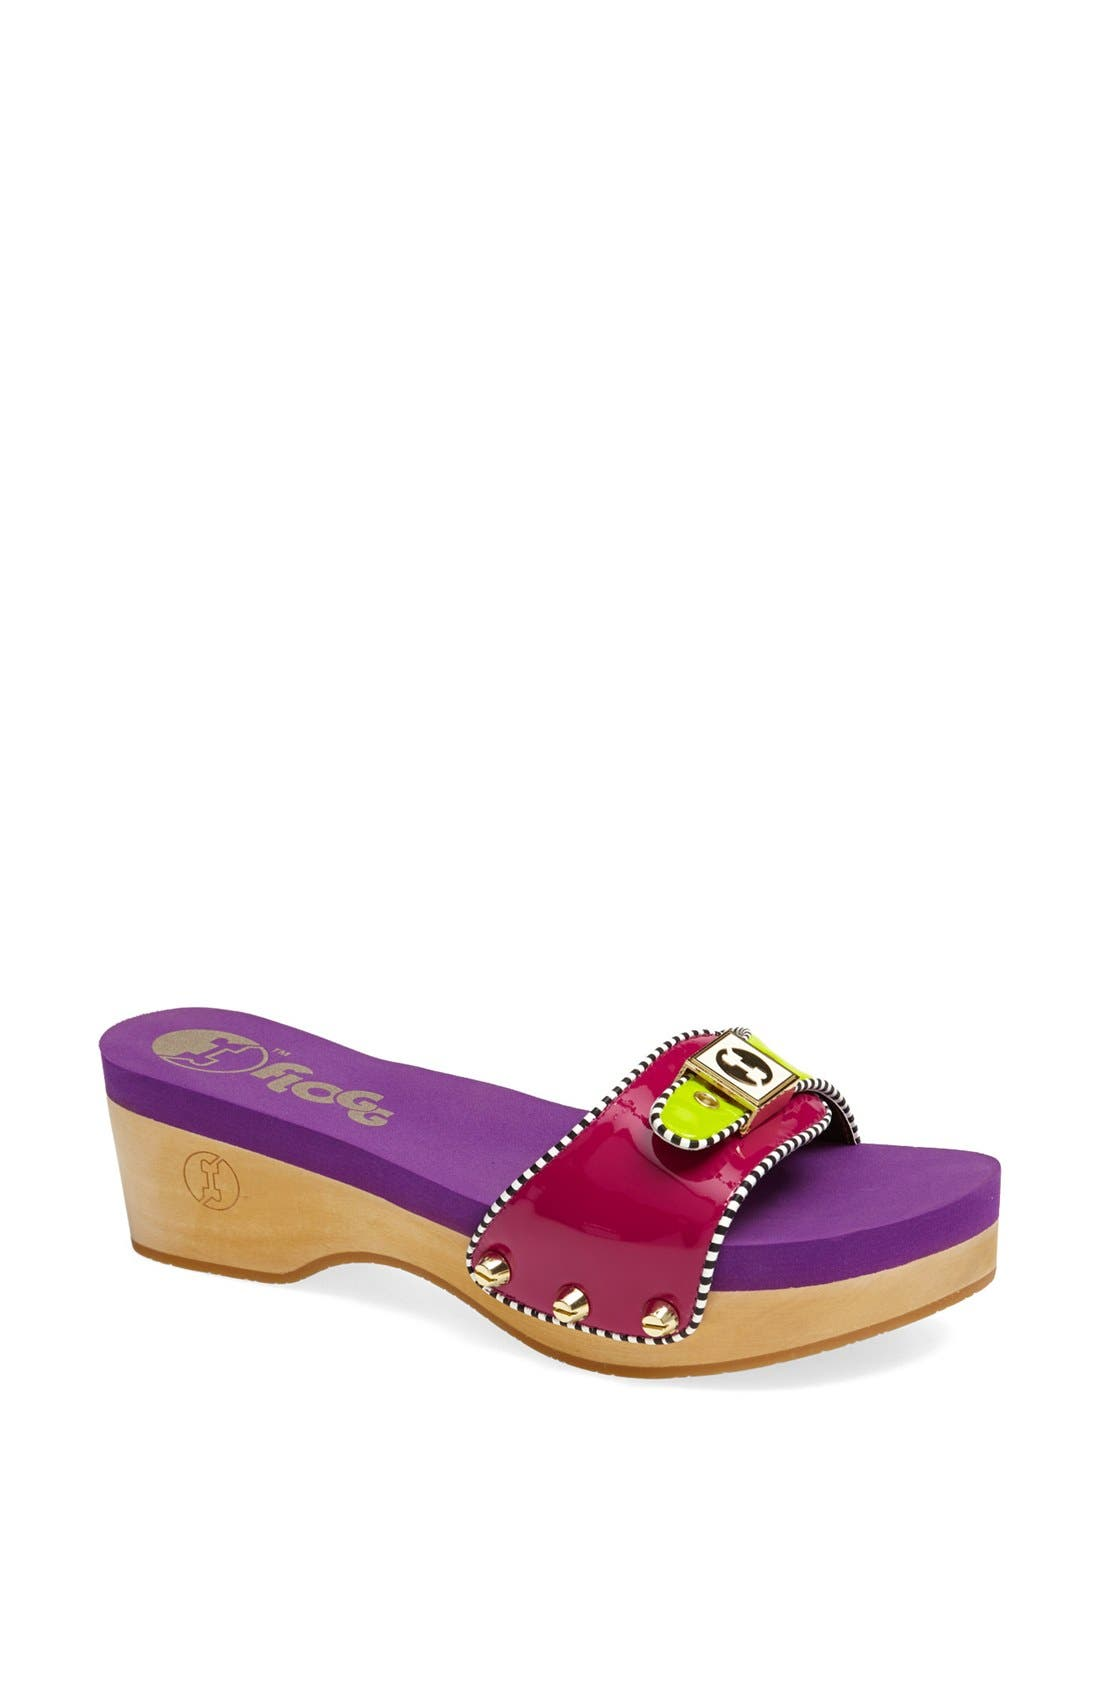 Alternate Image 1 Selected - Flogg 'Milana' Patent Slide Sandal